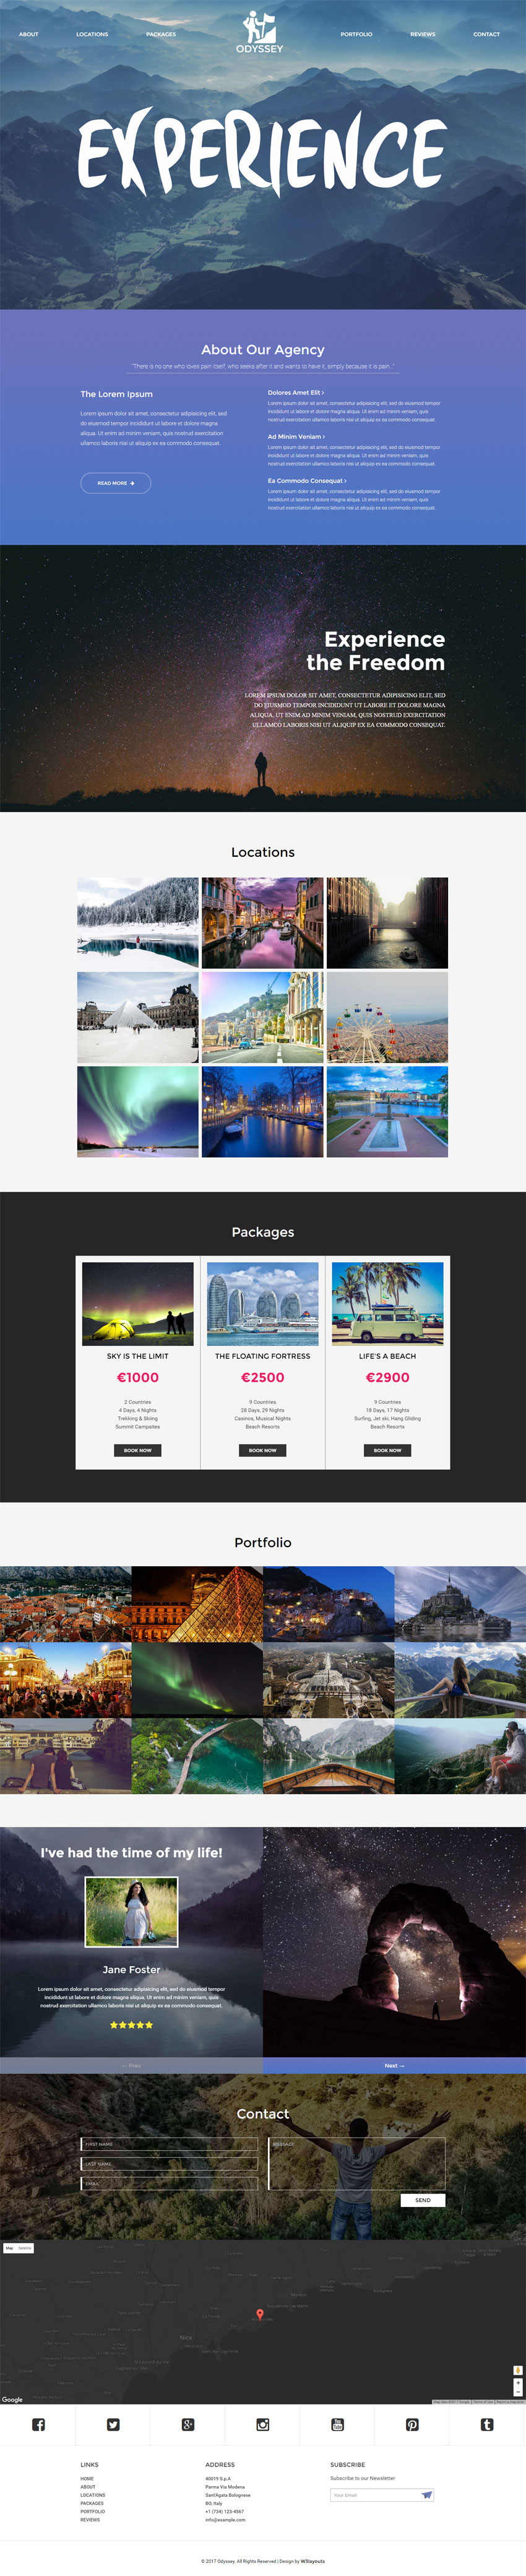 Odyssey a Travel Category Bootstrap Responsive Web Template | Free ...